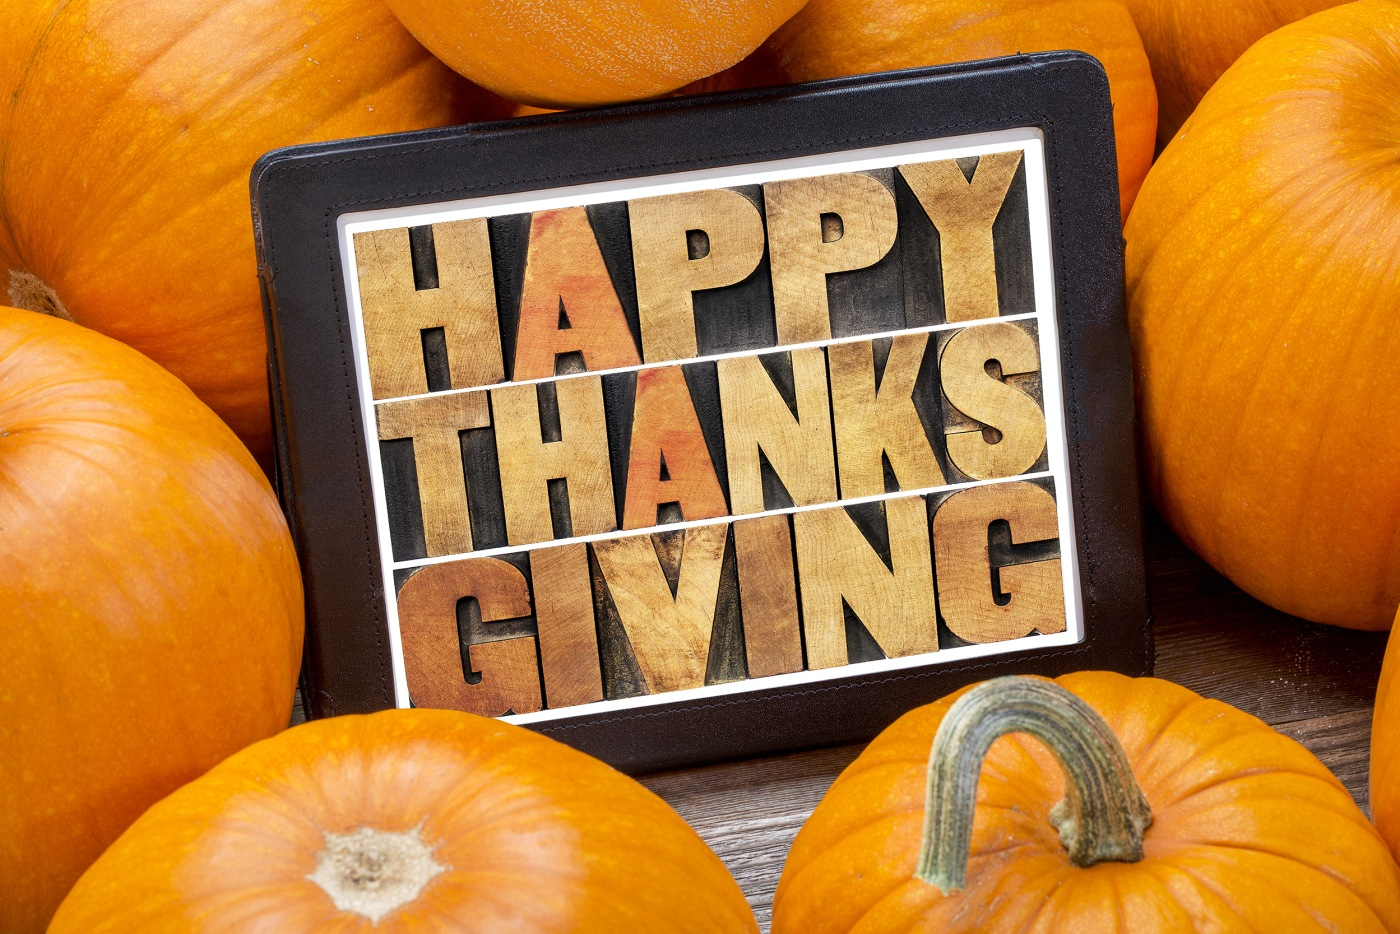 Happy Thanksgiving from our team to yours!